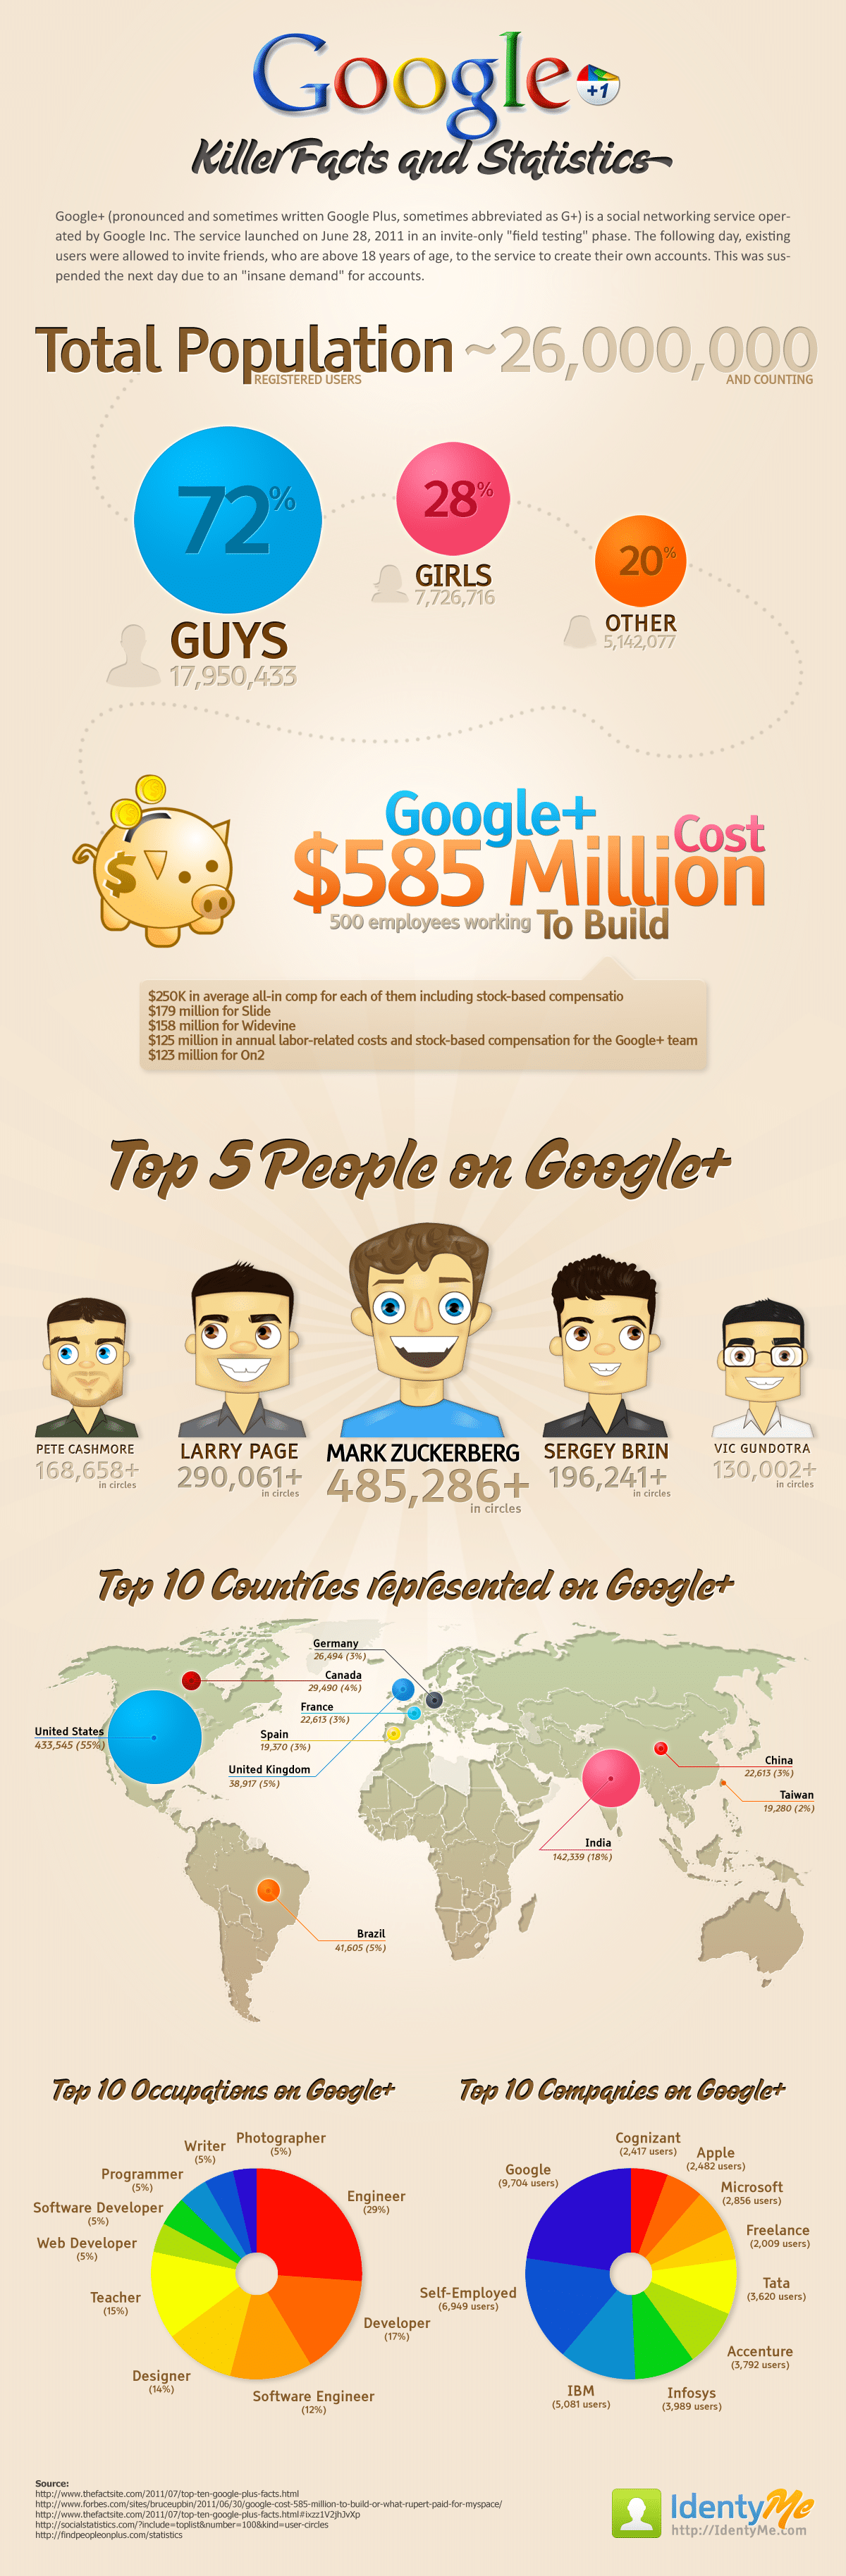 Google+ Killer Facts & Statistics [Infographic]